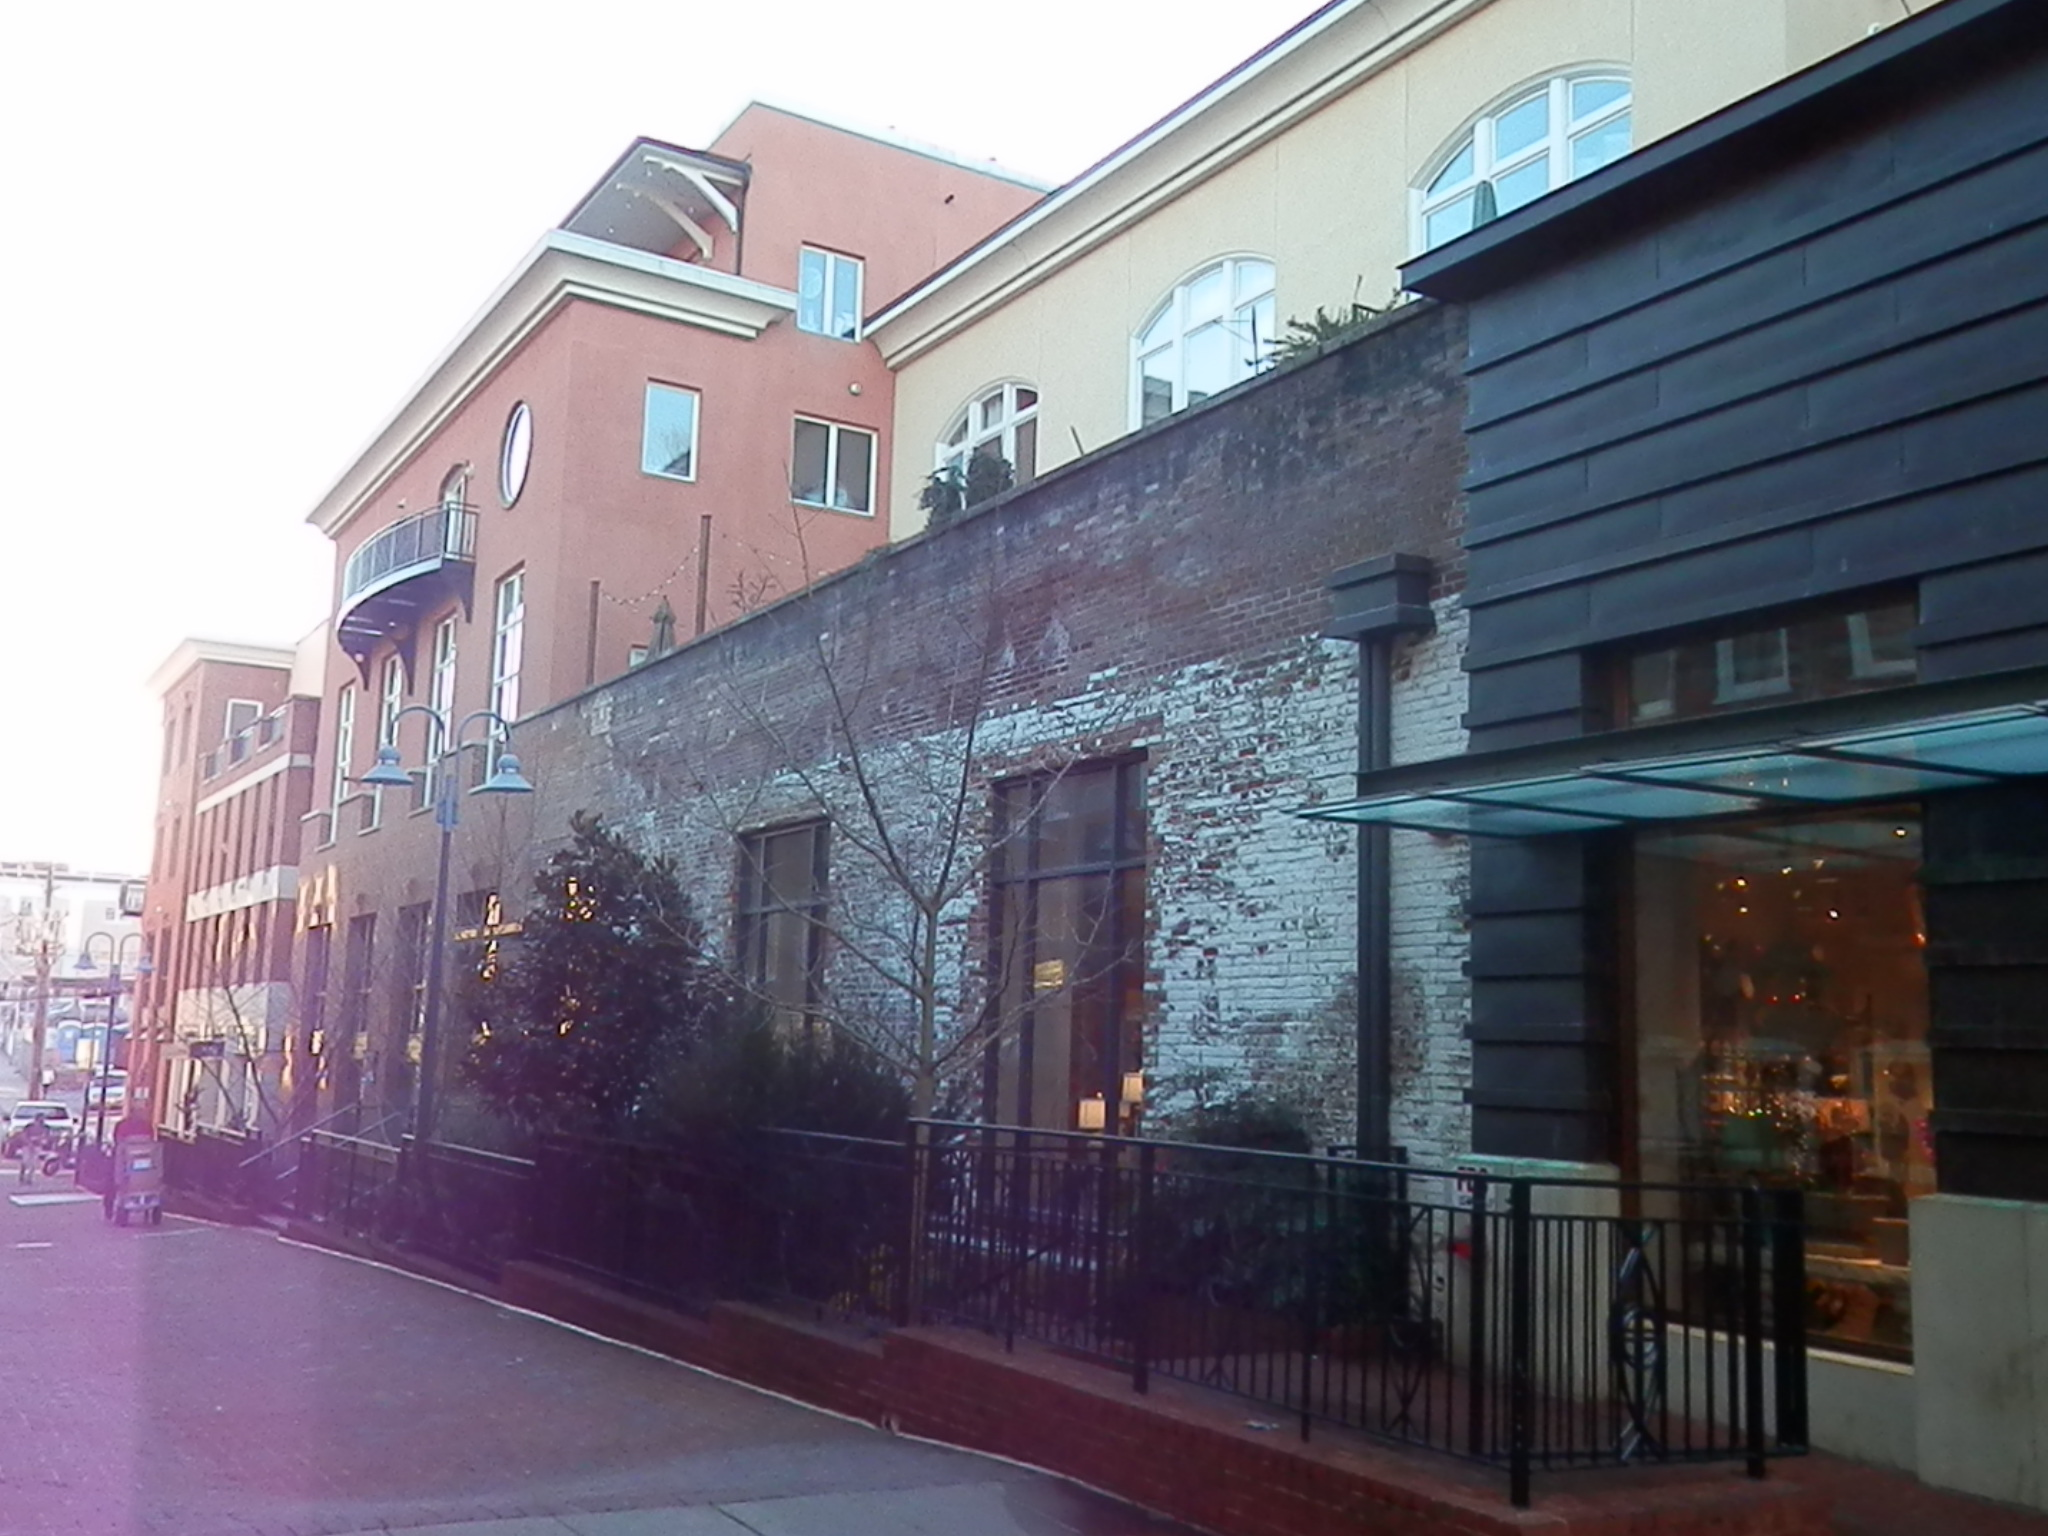 (the side of the building has multiple facades, including metal, faded brick, normal brick, and stucco)